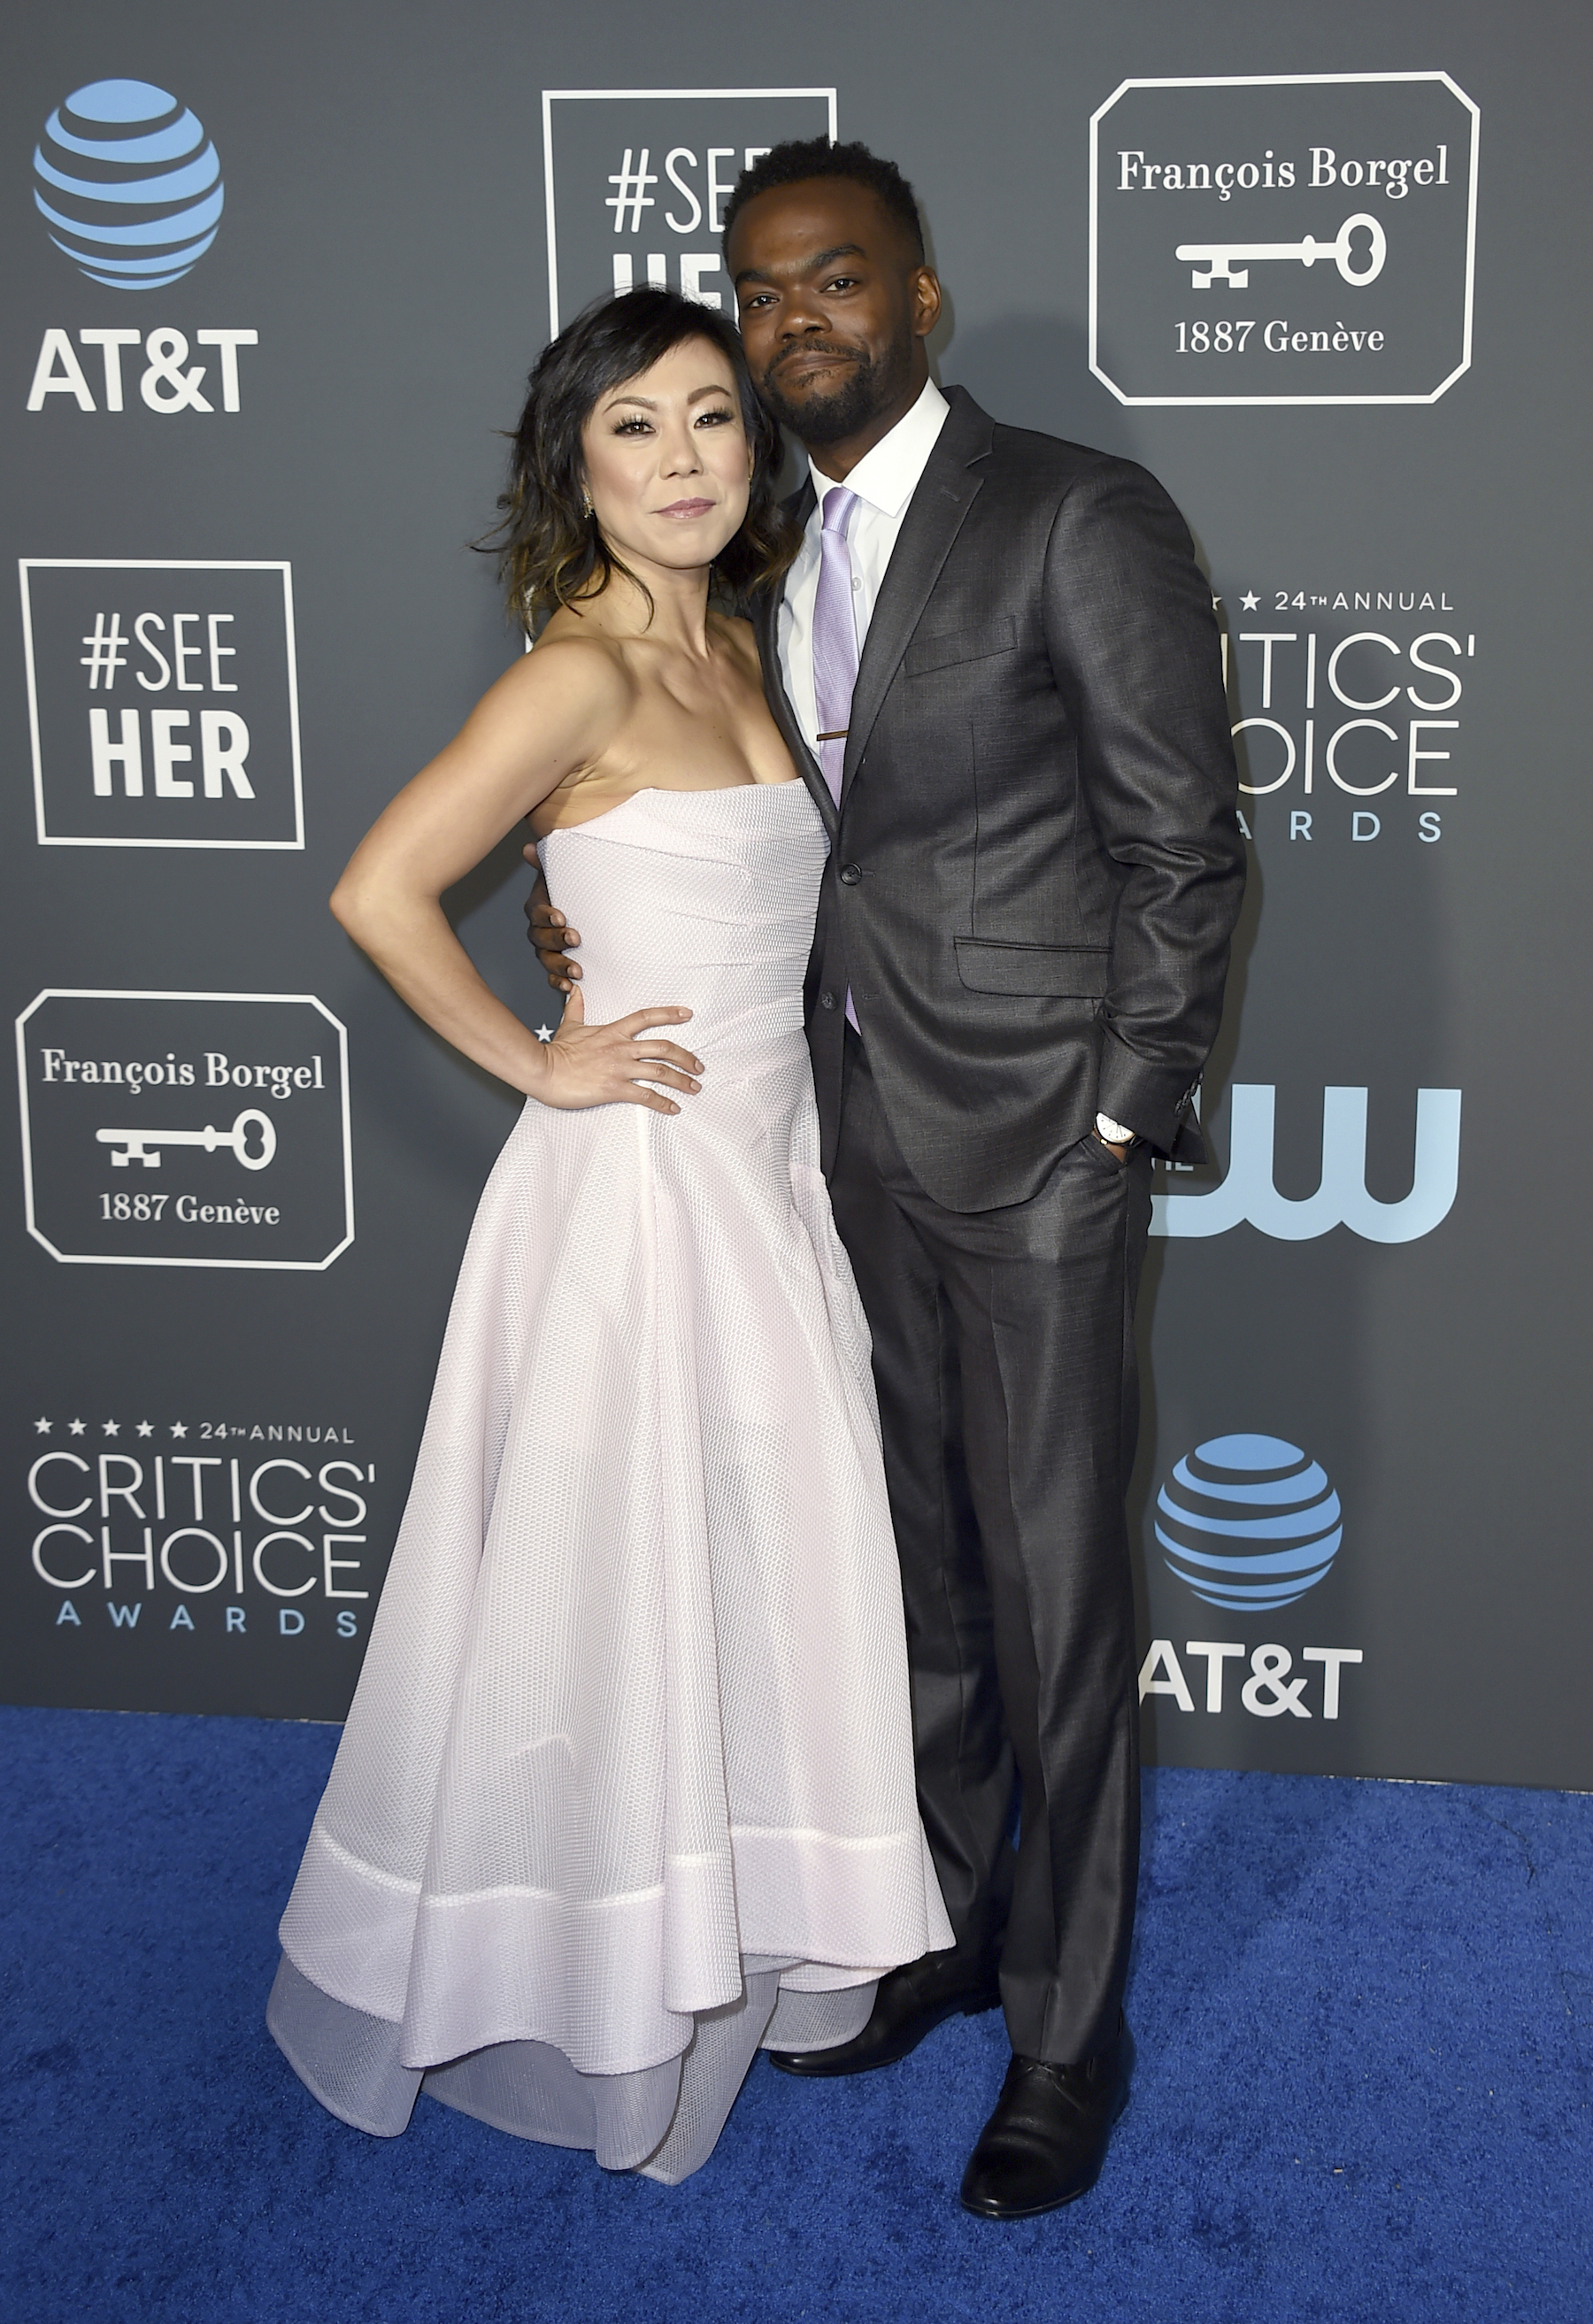 "<div class=""meta image-caption""><div class=""origin-logo origin-image ap""><span>AP</span></div><span class=""caption-text"">Ali Ahn, left, and William Jackson Harper arrive at the 24th annual Critics' Choice Awards on Sunday, Jan. 13, 2019, at the Barker Hangar in Santa Monica, Calif. (Jordan Strauss/Invision/AP)</span></div>"